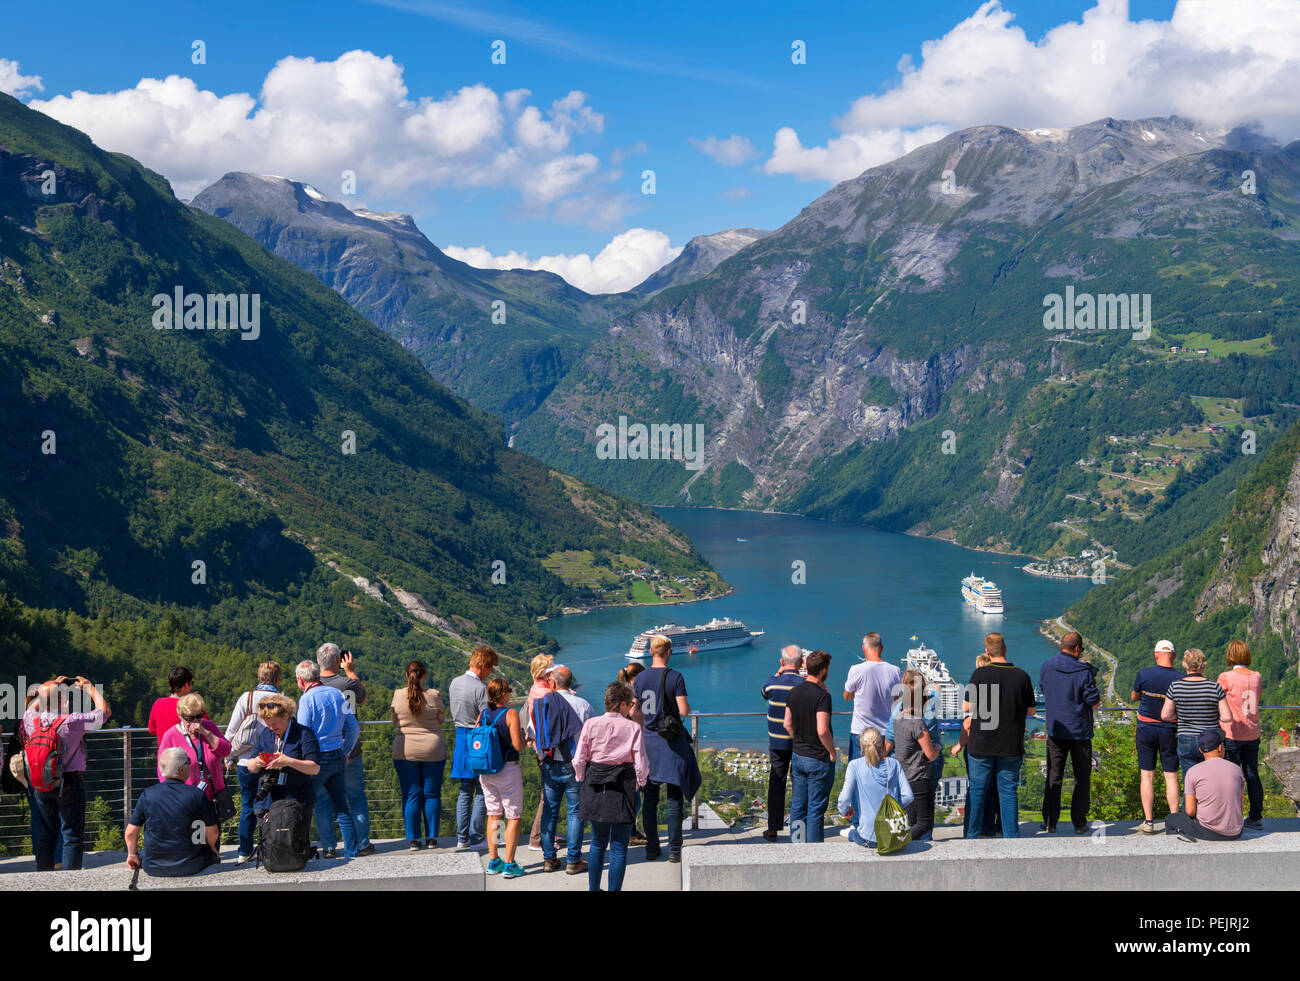 Geiranger, Norway. Tourists at the viewpoint overlooking the town of Geiranger and Geirangerfjord, Norway - Stock Image